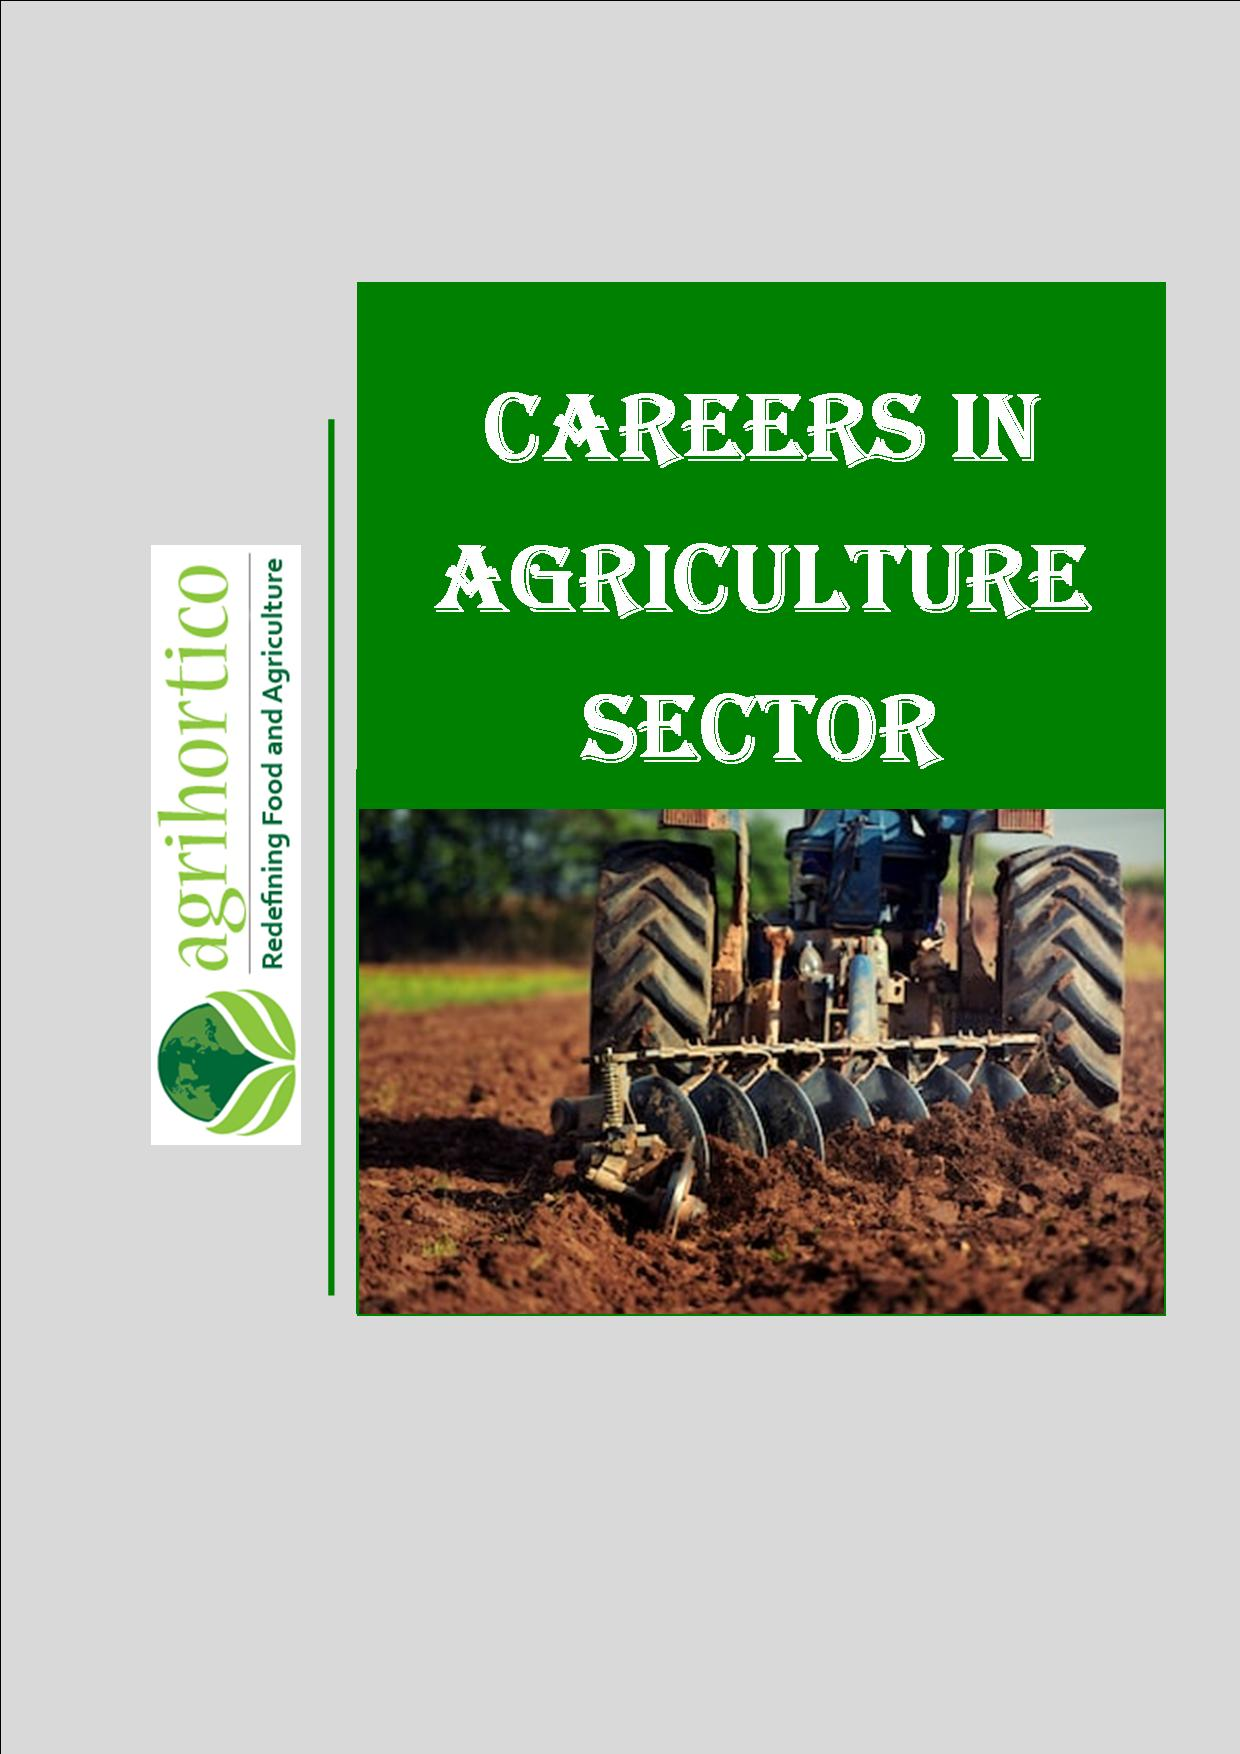 careers-agriculture